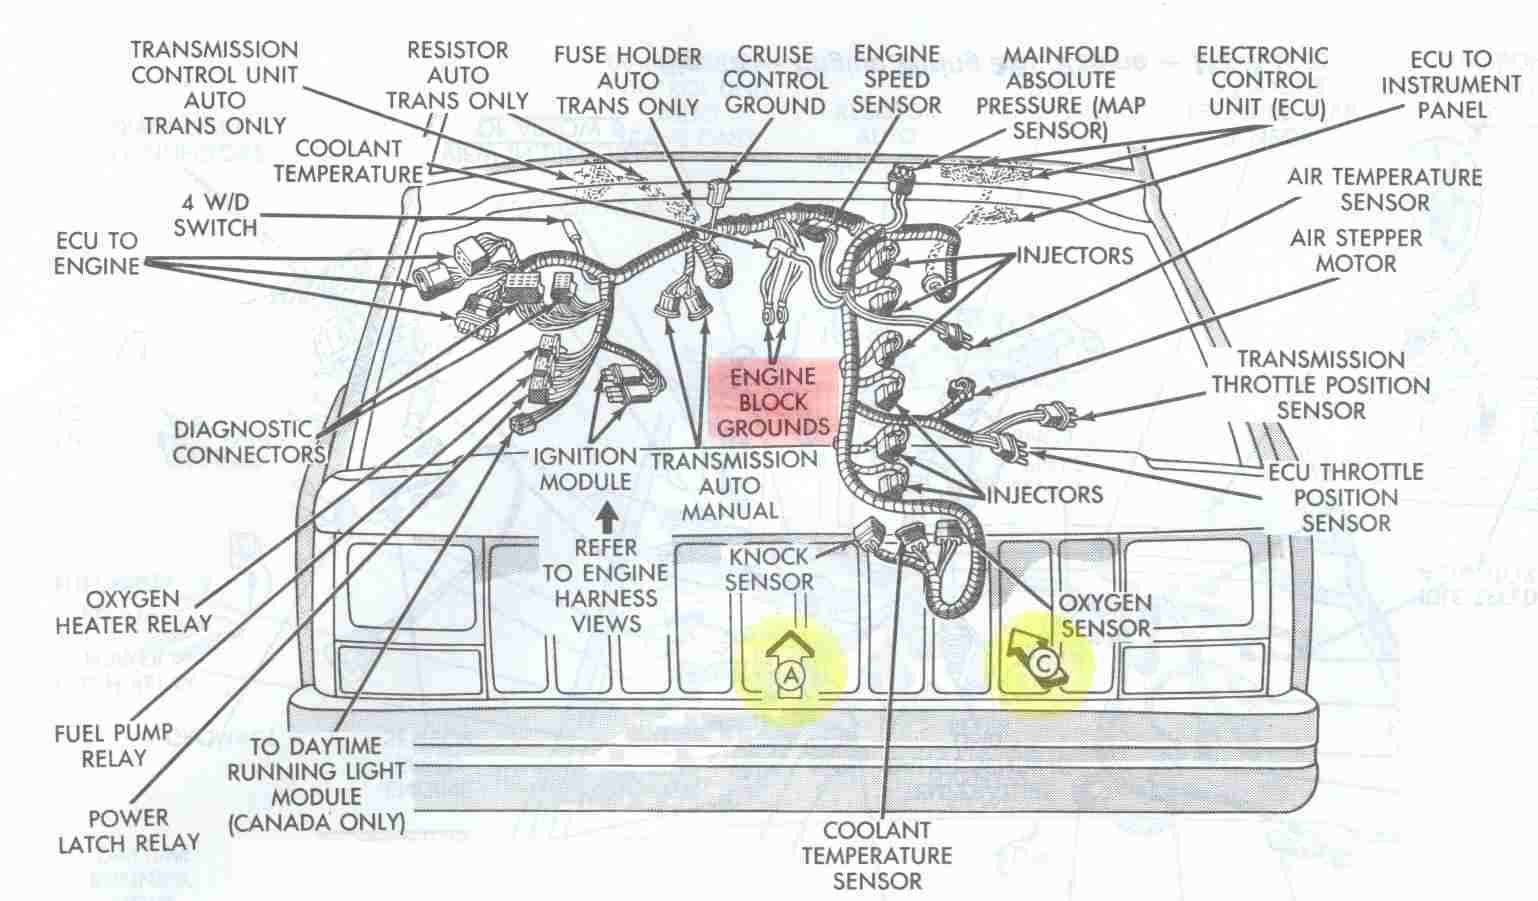 Jeep Transmission Wiring - Wiring Diagrams Value on